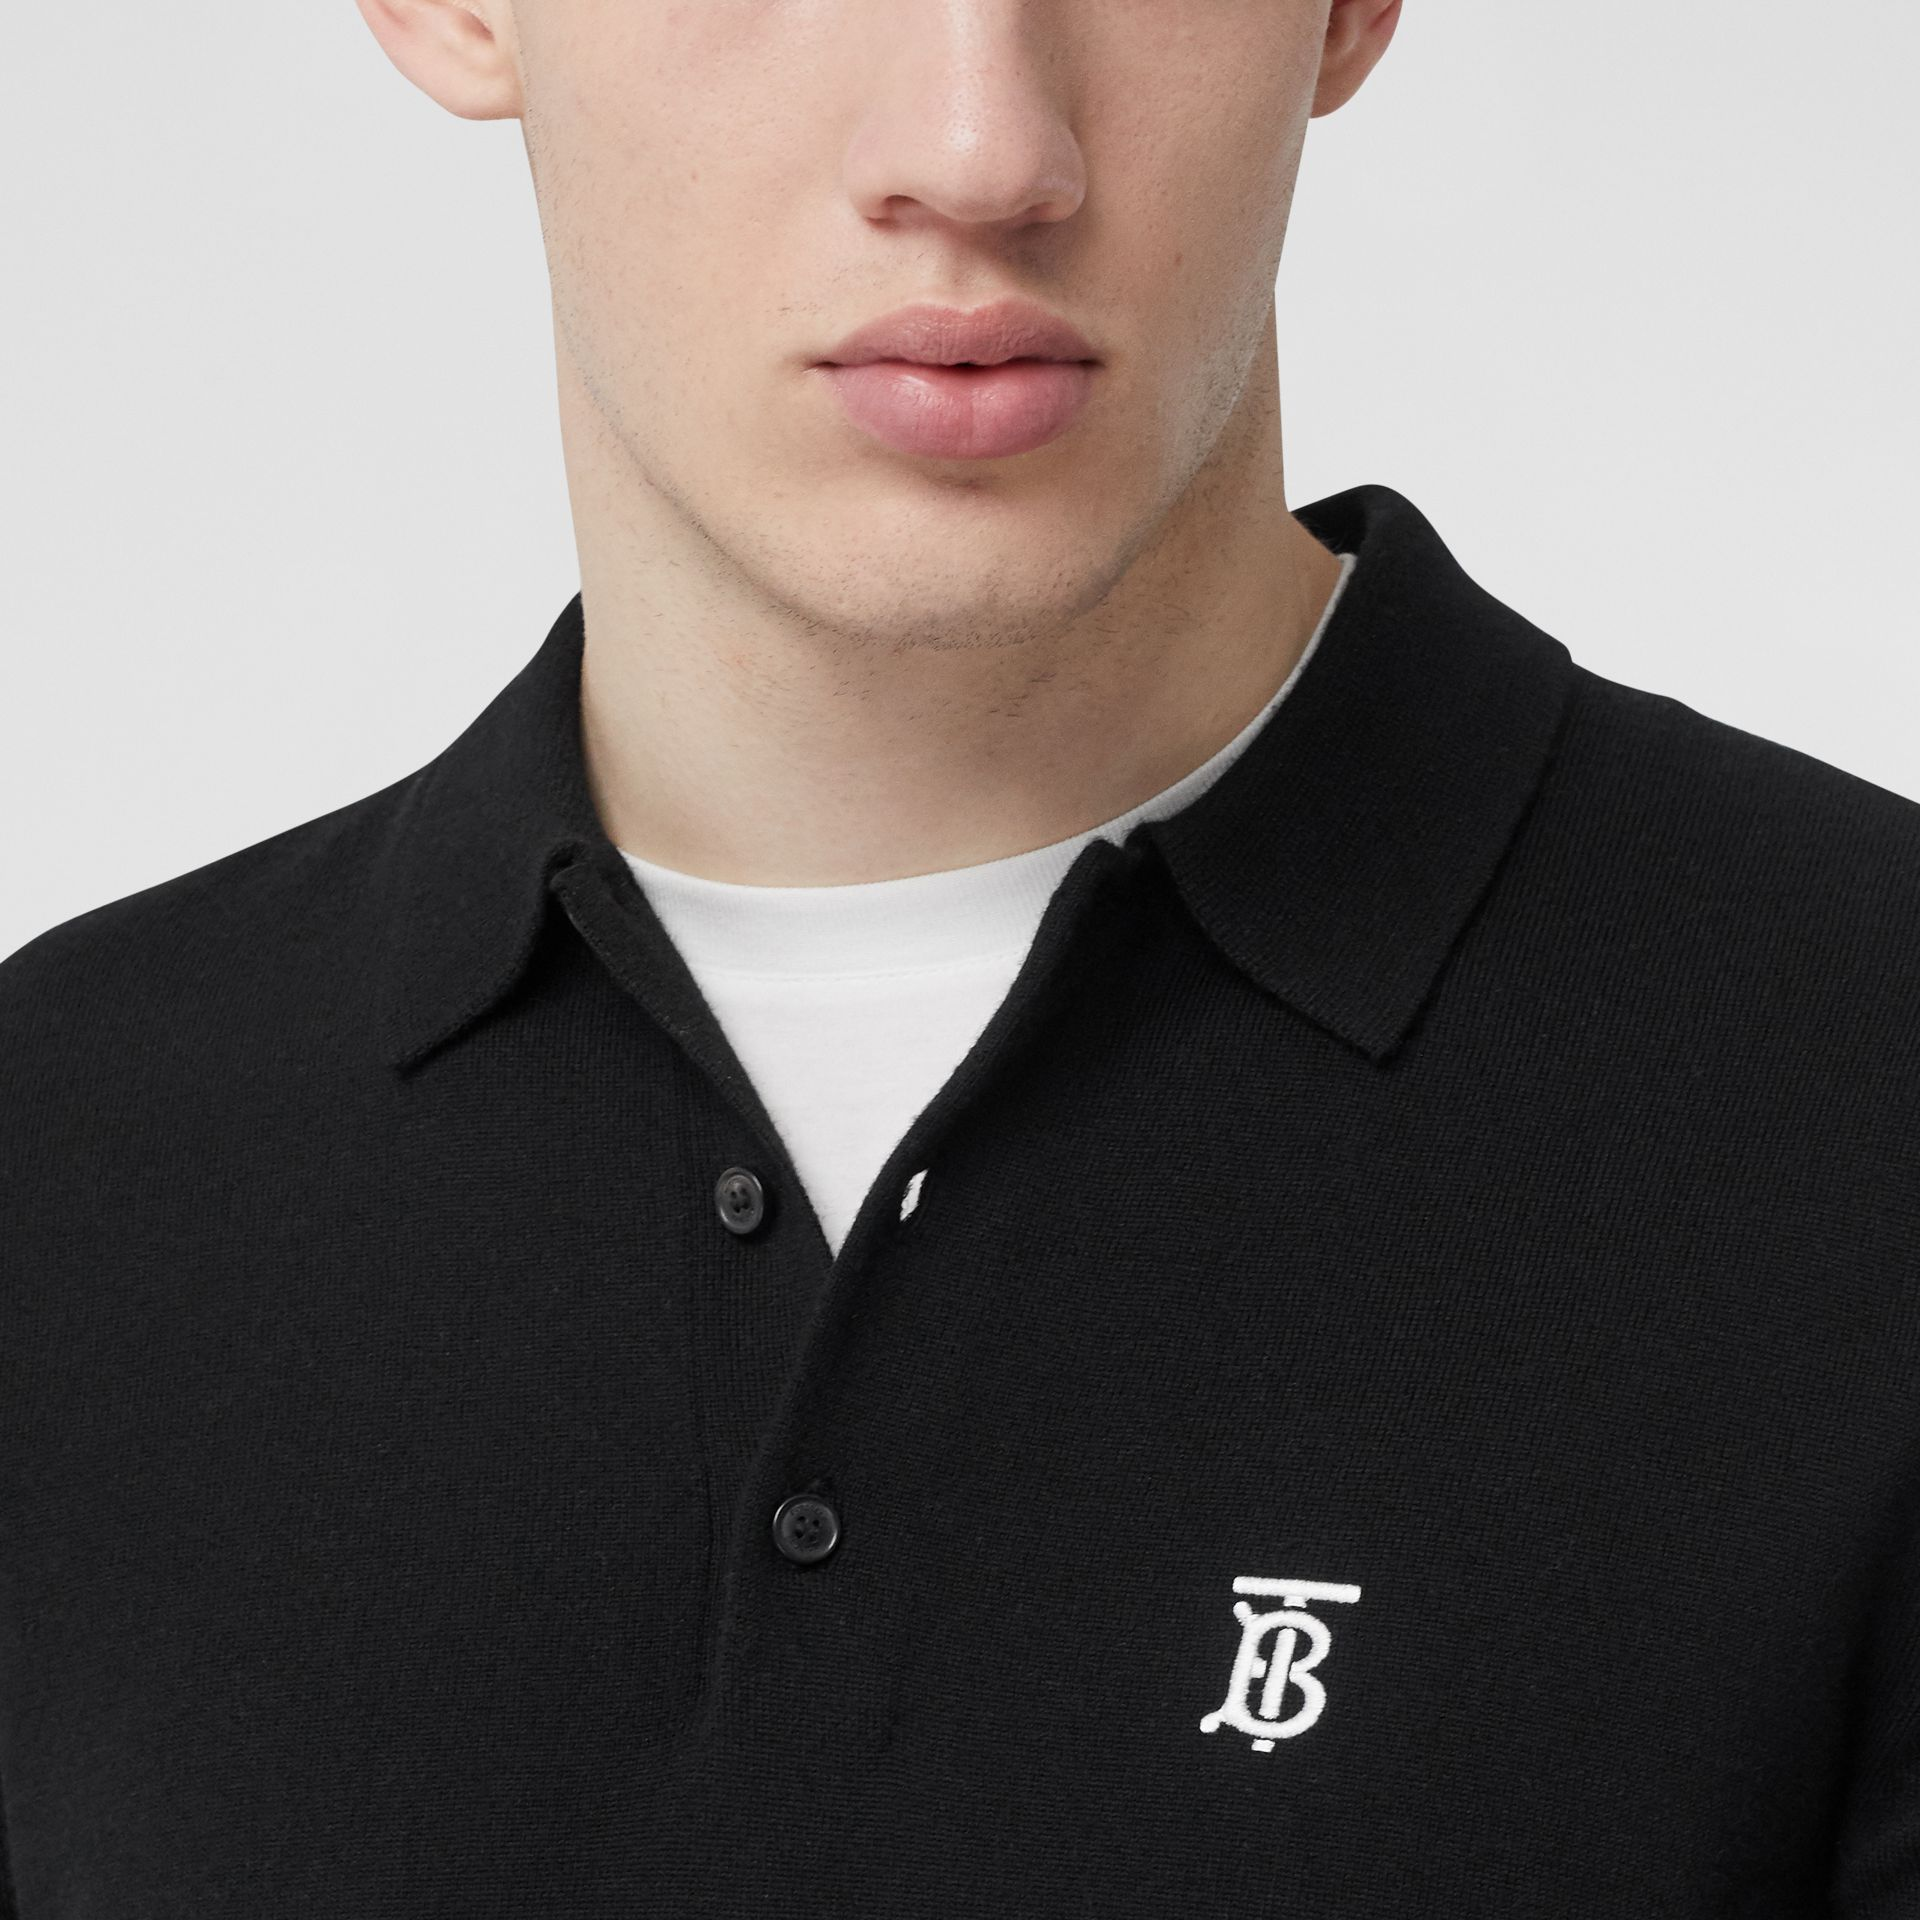 Long-sleeve Monogram Motif Merino Wool Polo Shirt in Black - Men | Burberry Canada - gallery image 1